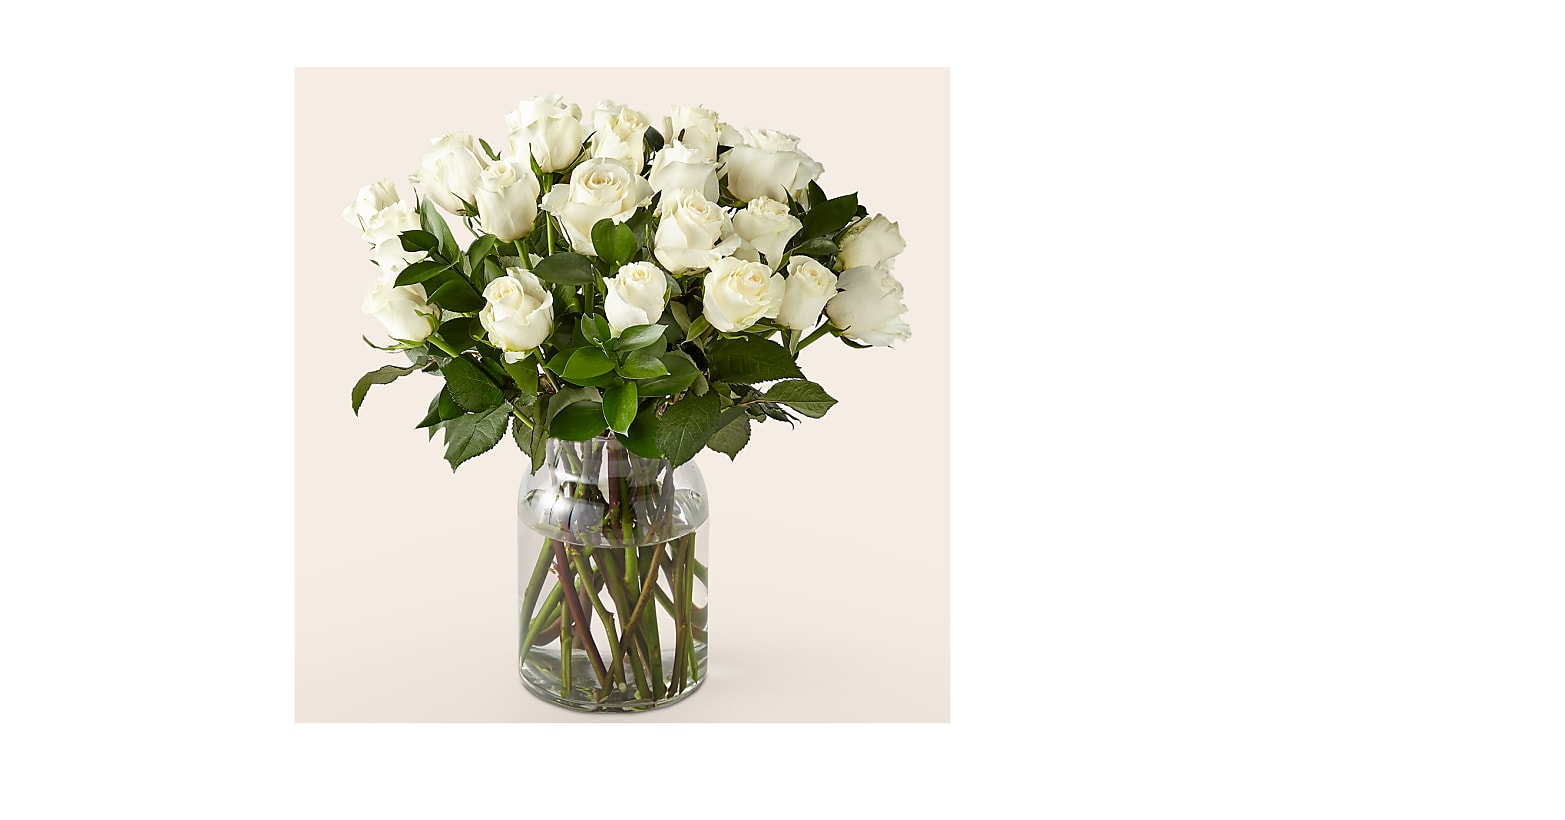 24 Stem Moonlight White Rose Bouquet With Ginger Vase - Image 1 Of 2